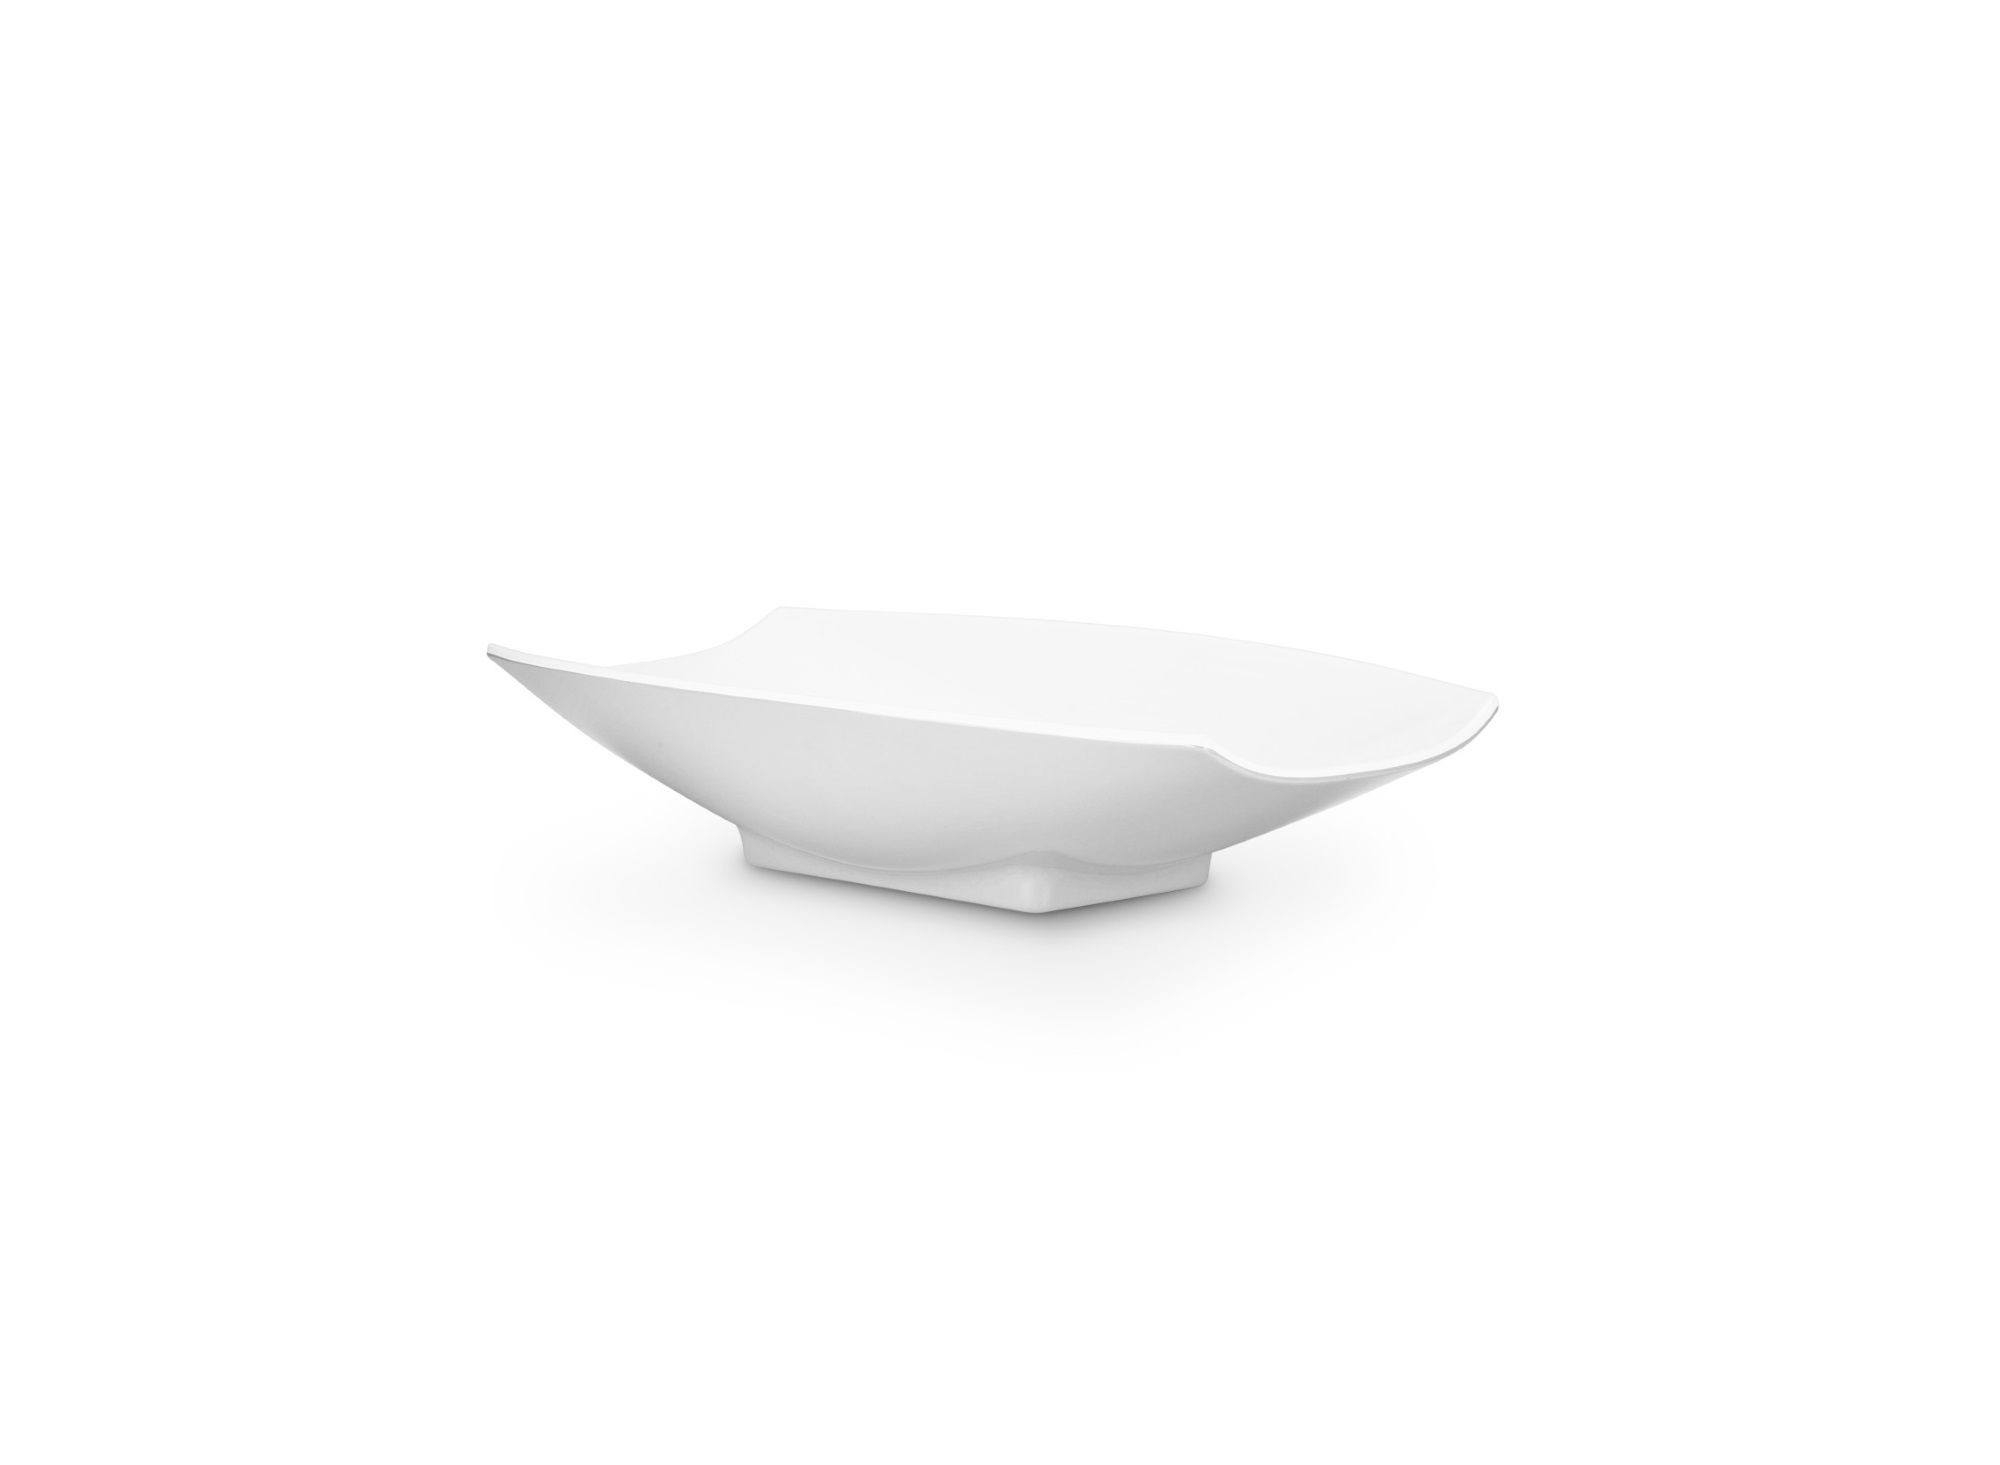 Bon Chef 53701White White Melamine Curves Bowl, 8 oz.